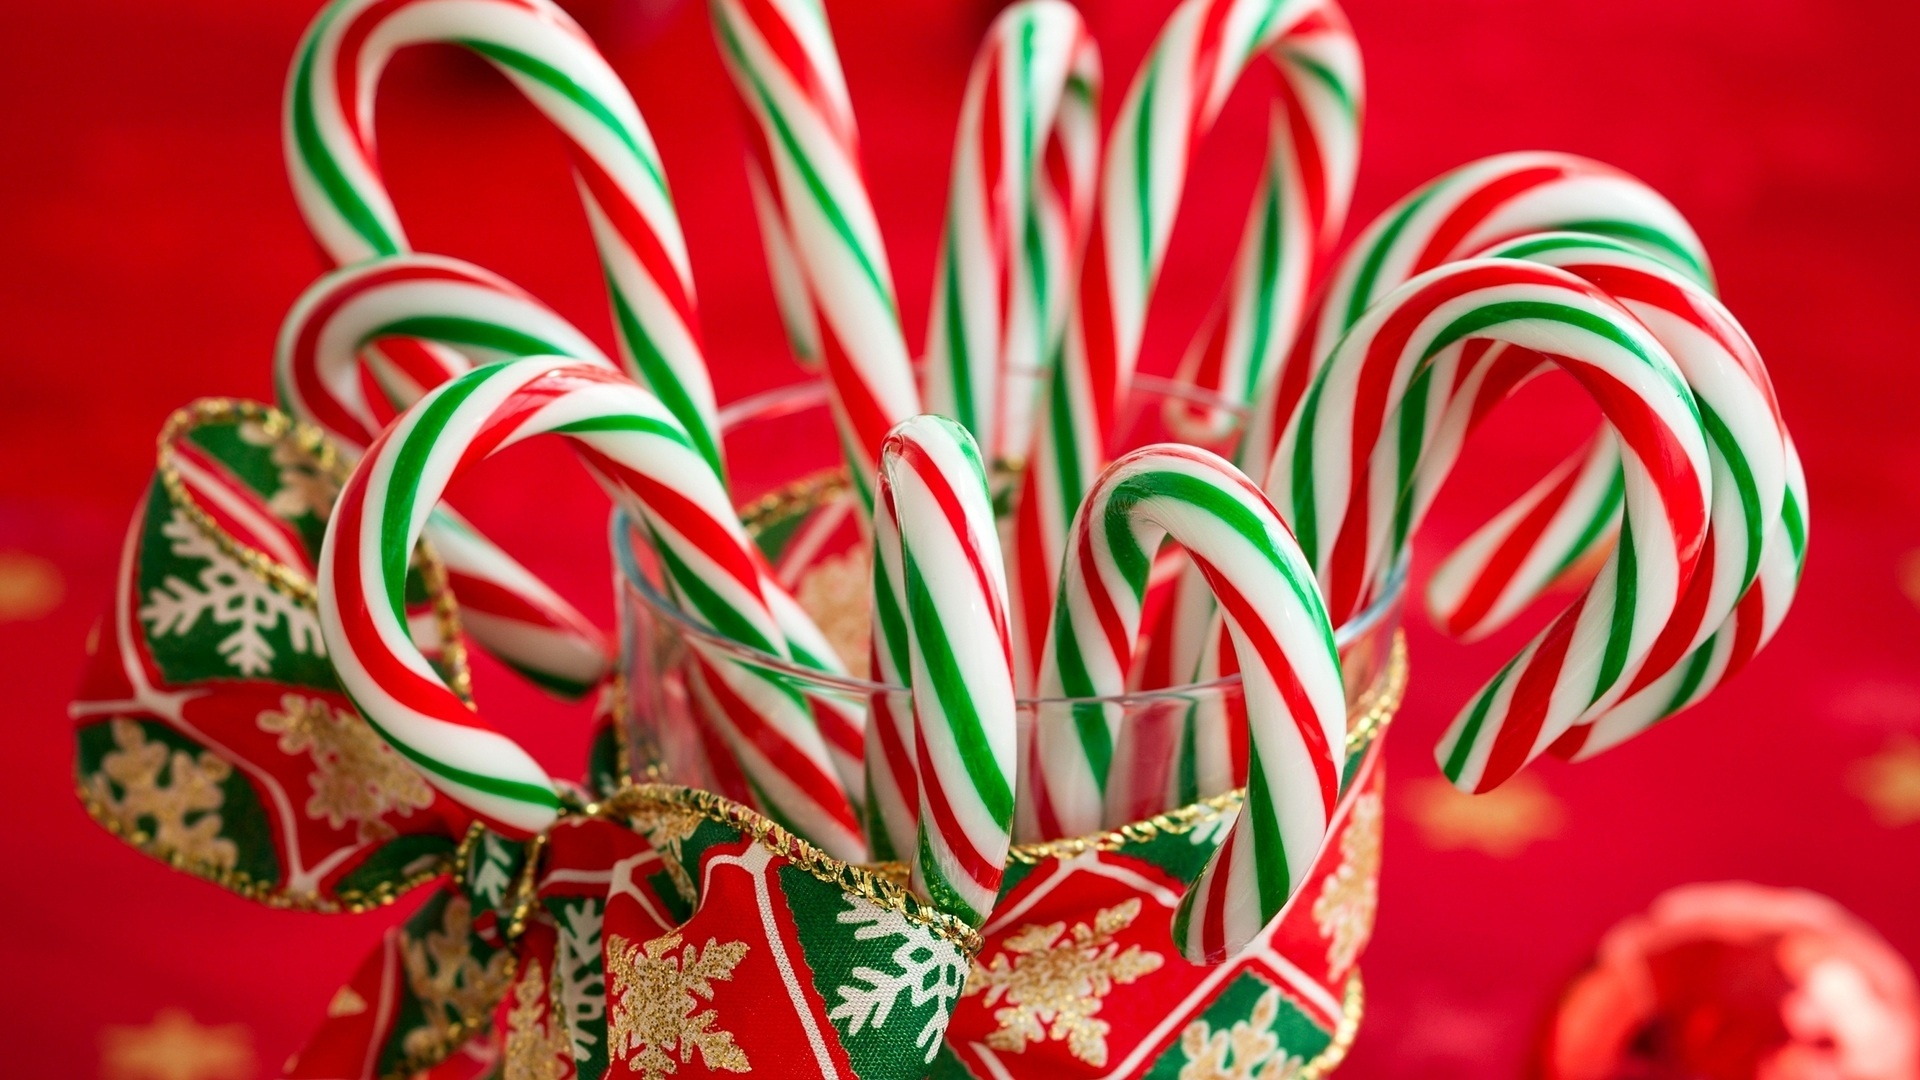 Candy Cane Pic